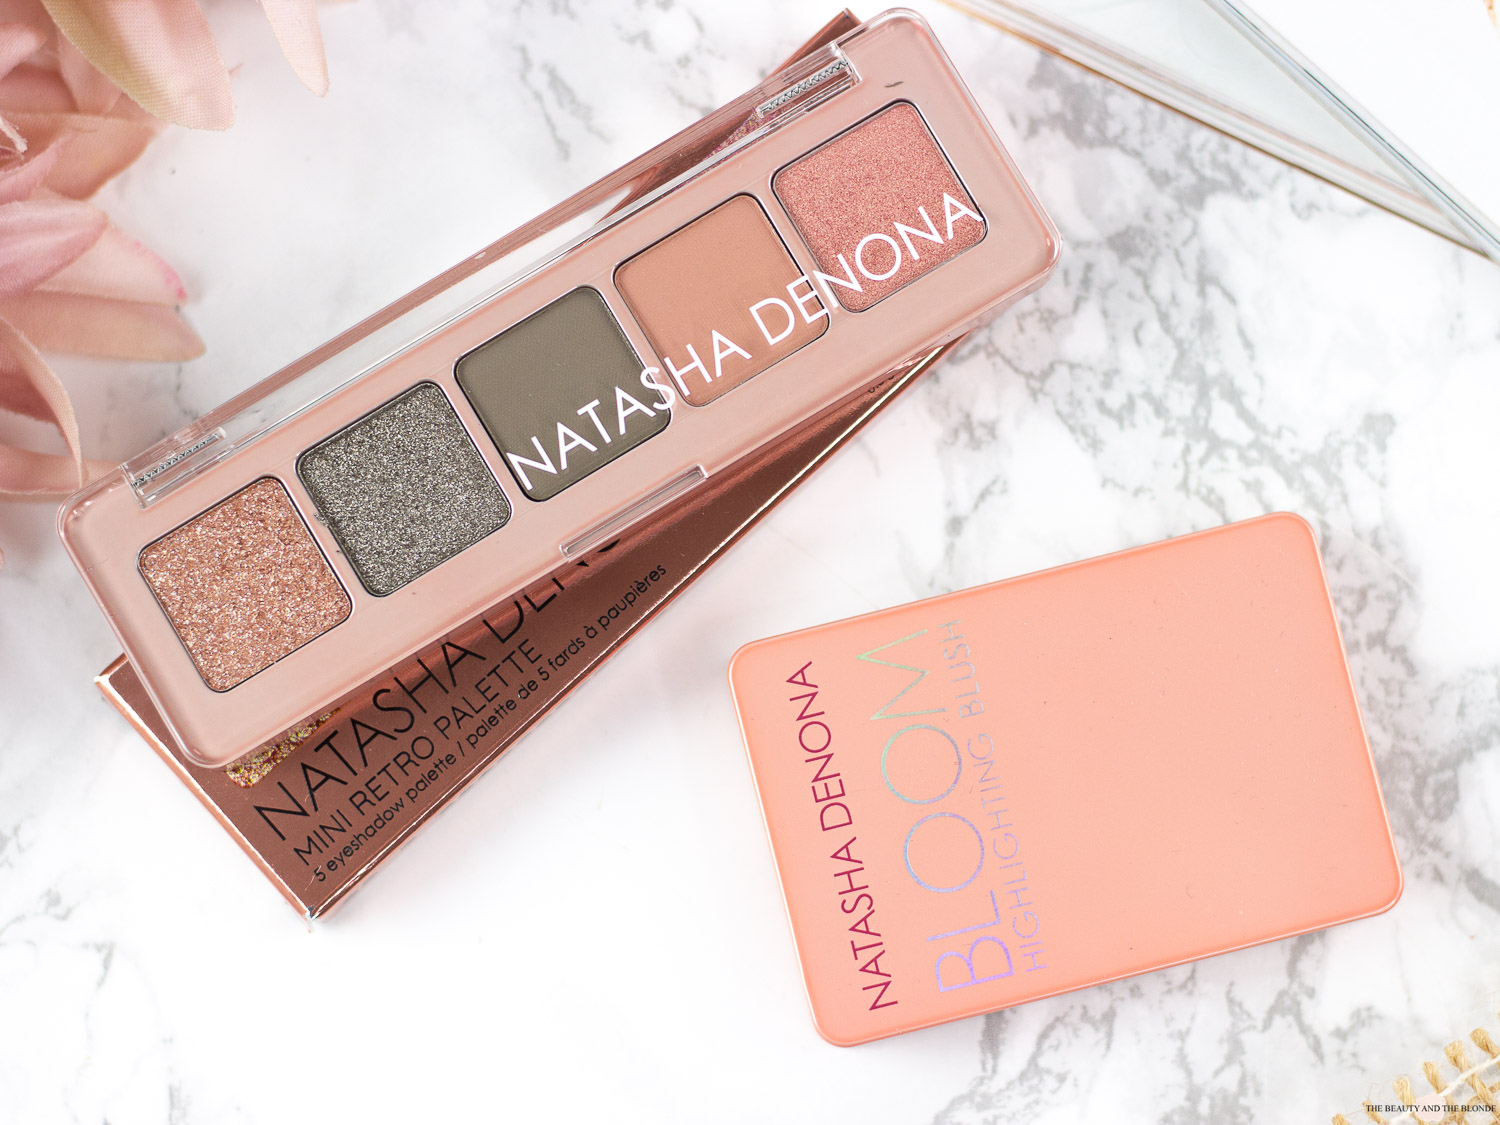 Natasha Denona Mini Retro Palette Review